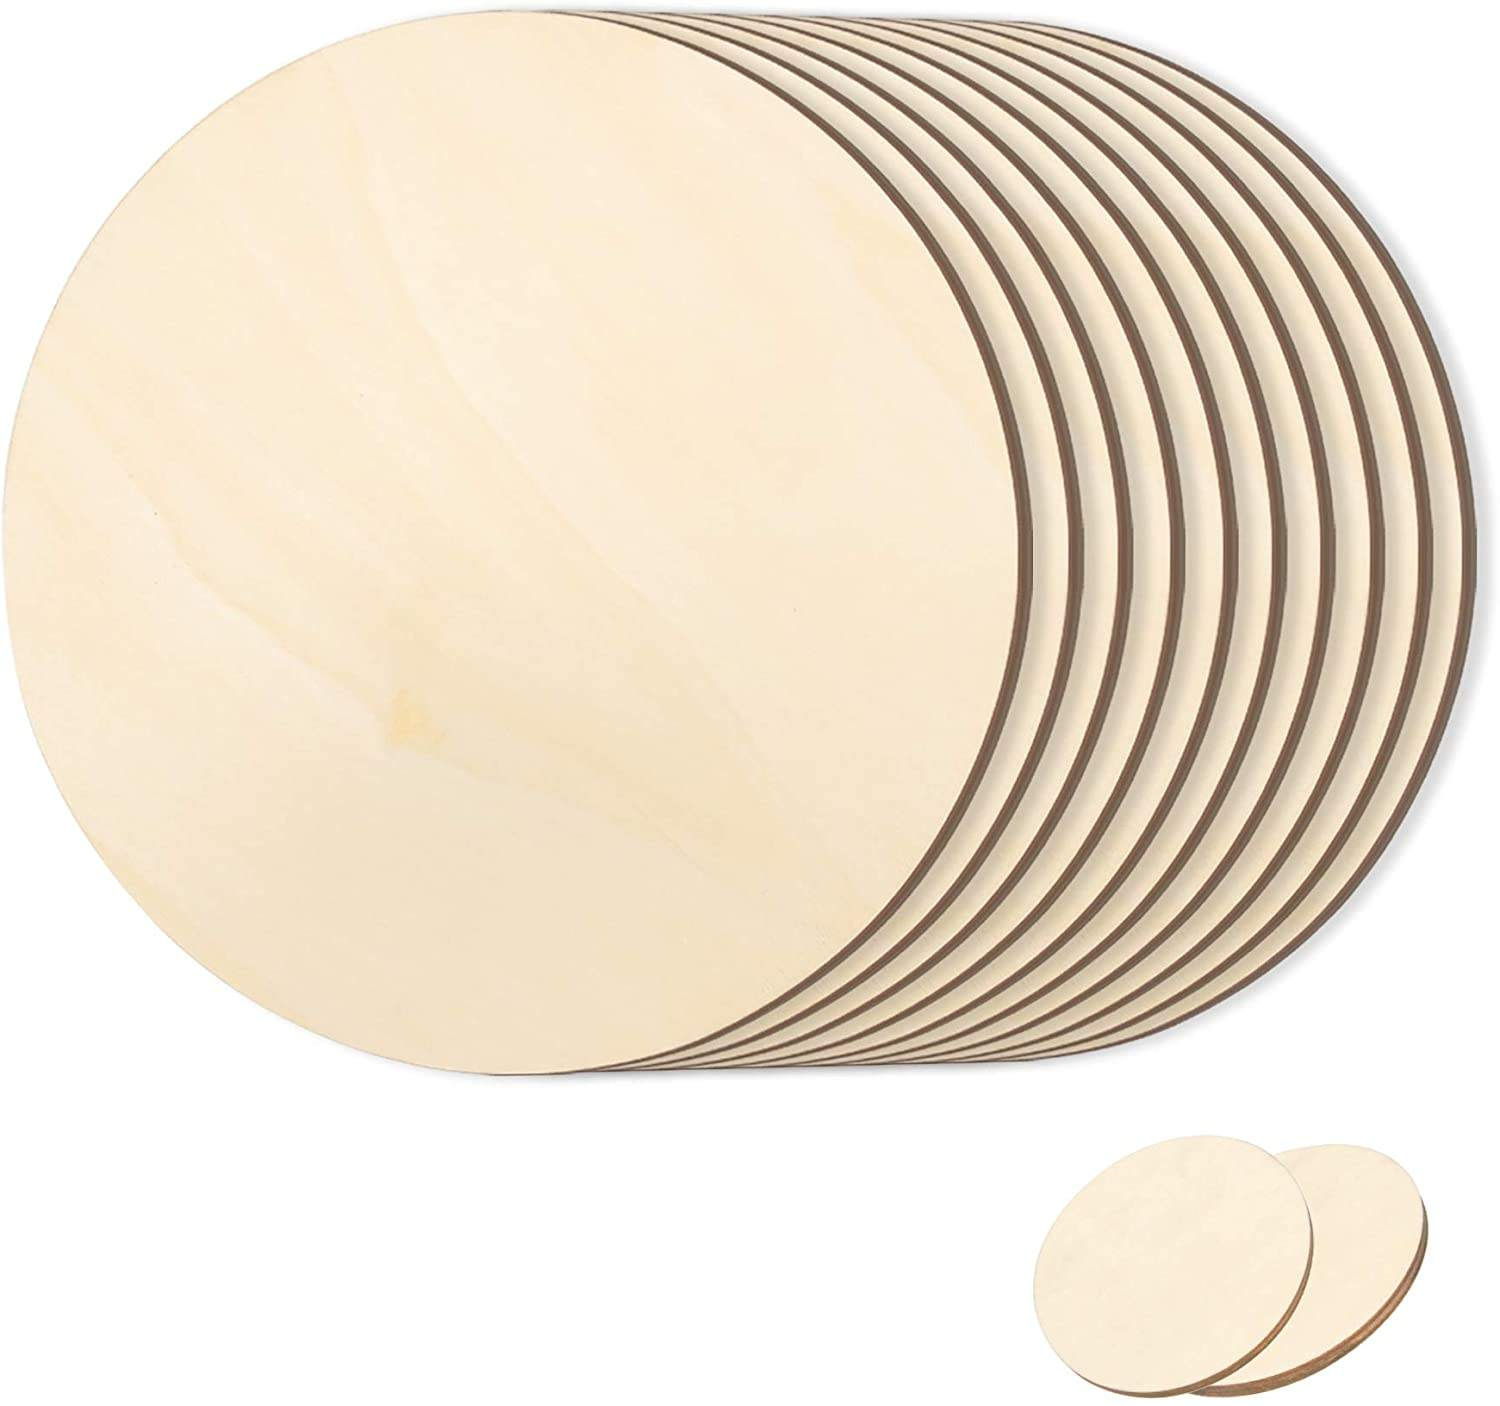 Unfinished Natural Round Blank Wood Discs Circle Wood Cutouts for Craft Supplies